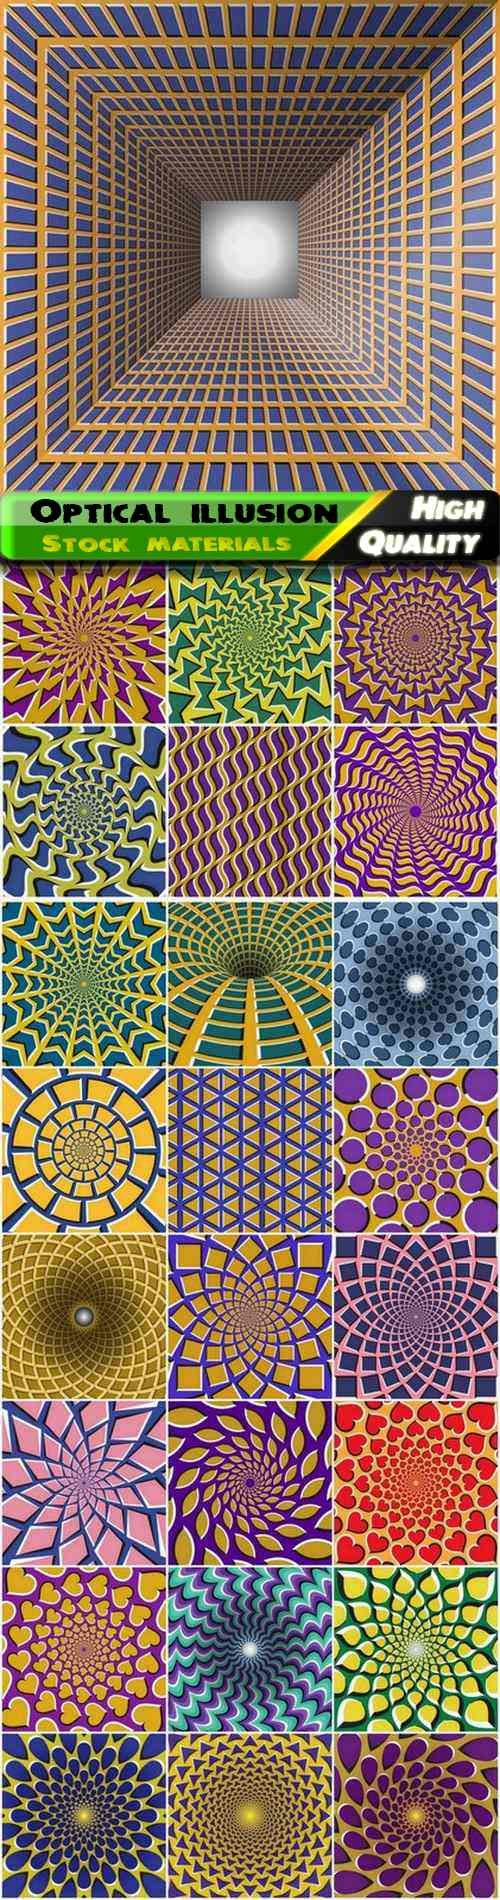 Abstract creative psychedelic background with optical illusion 25 Eps